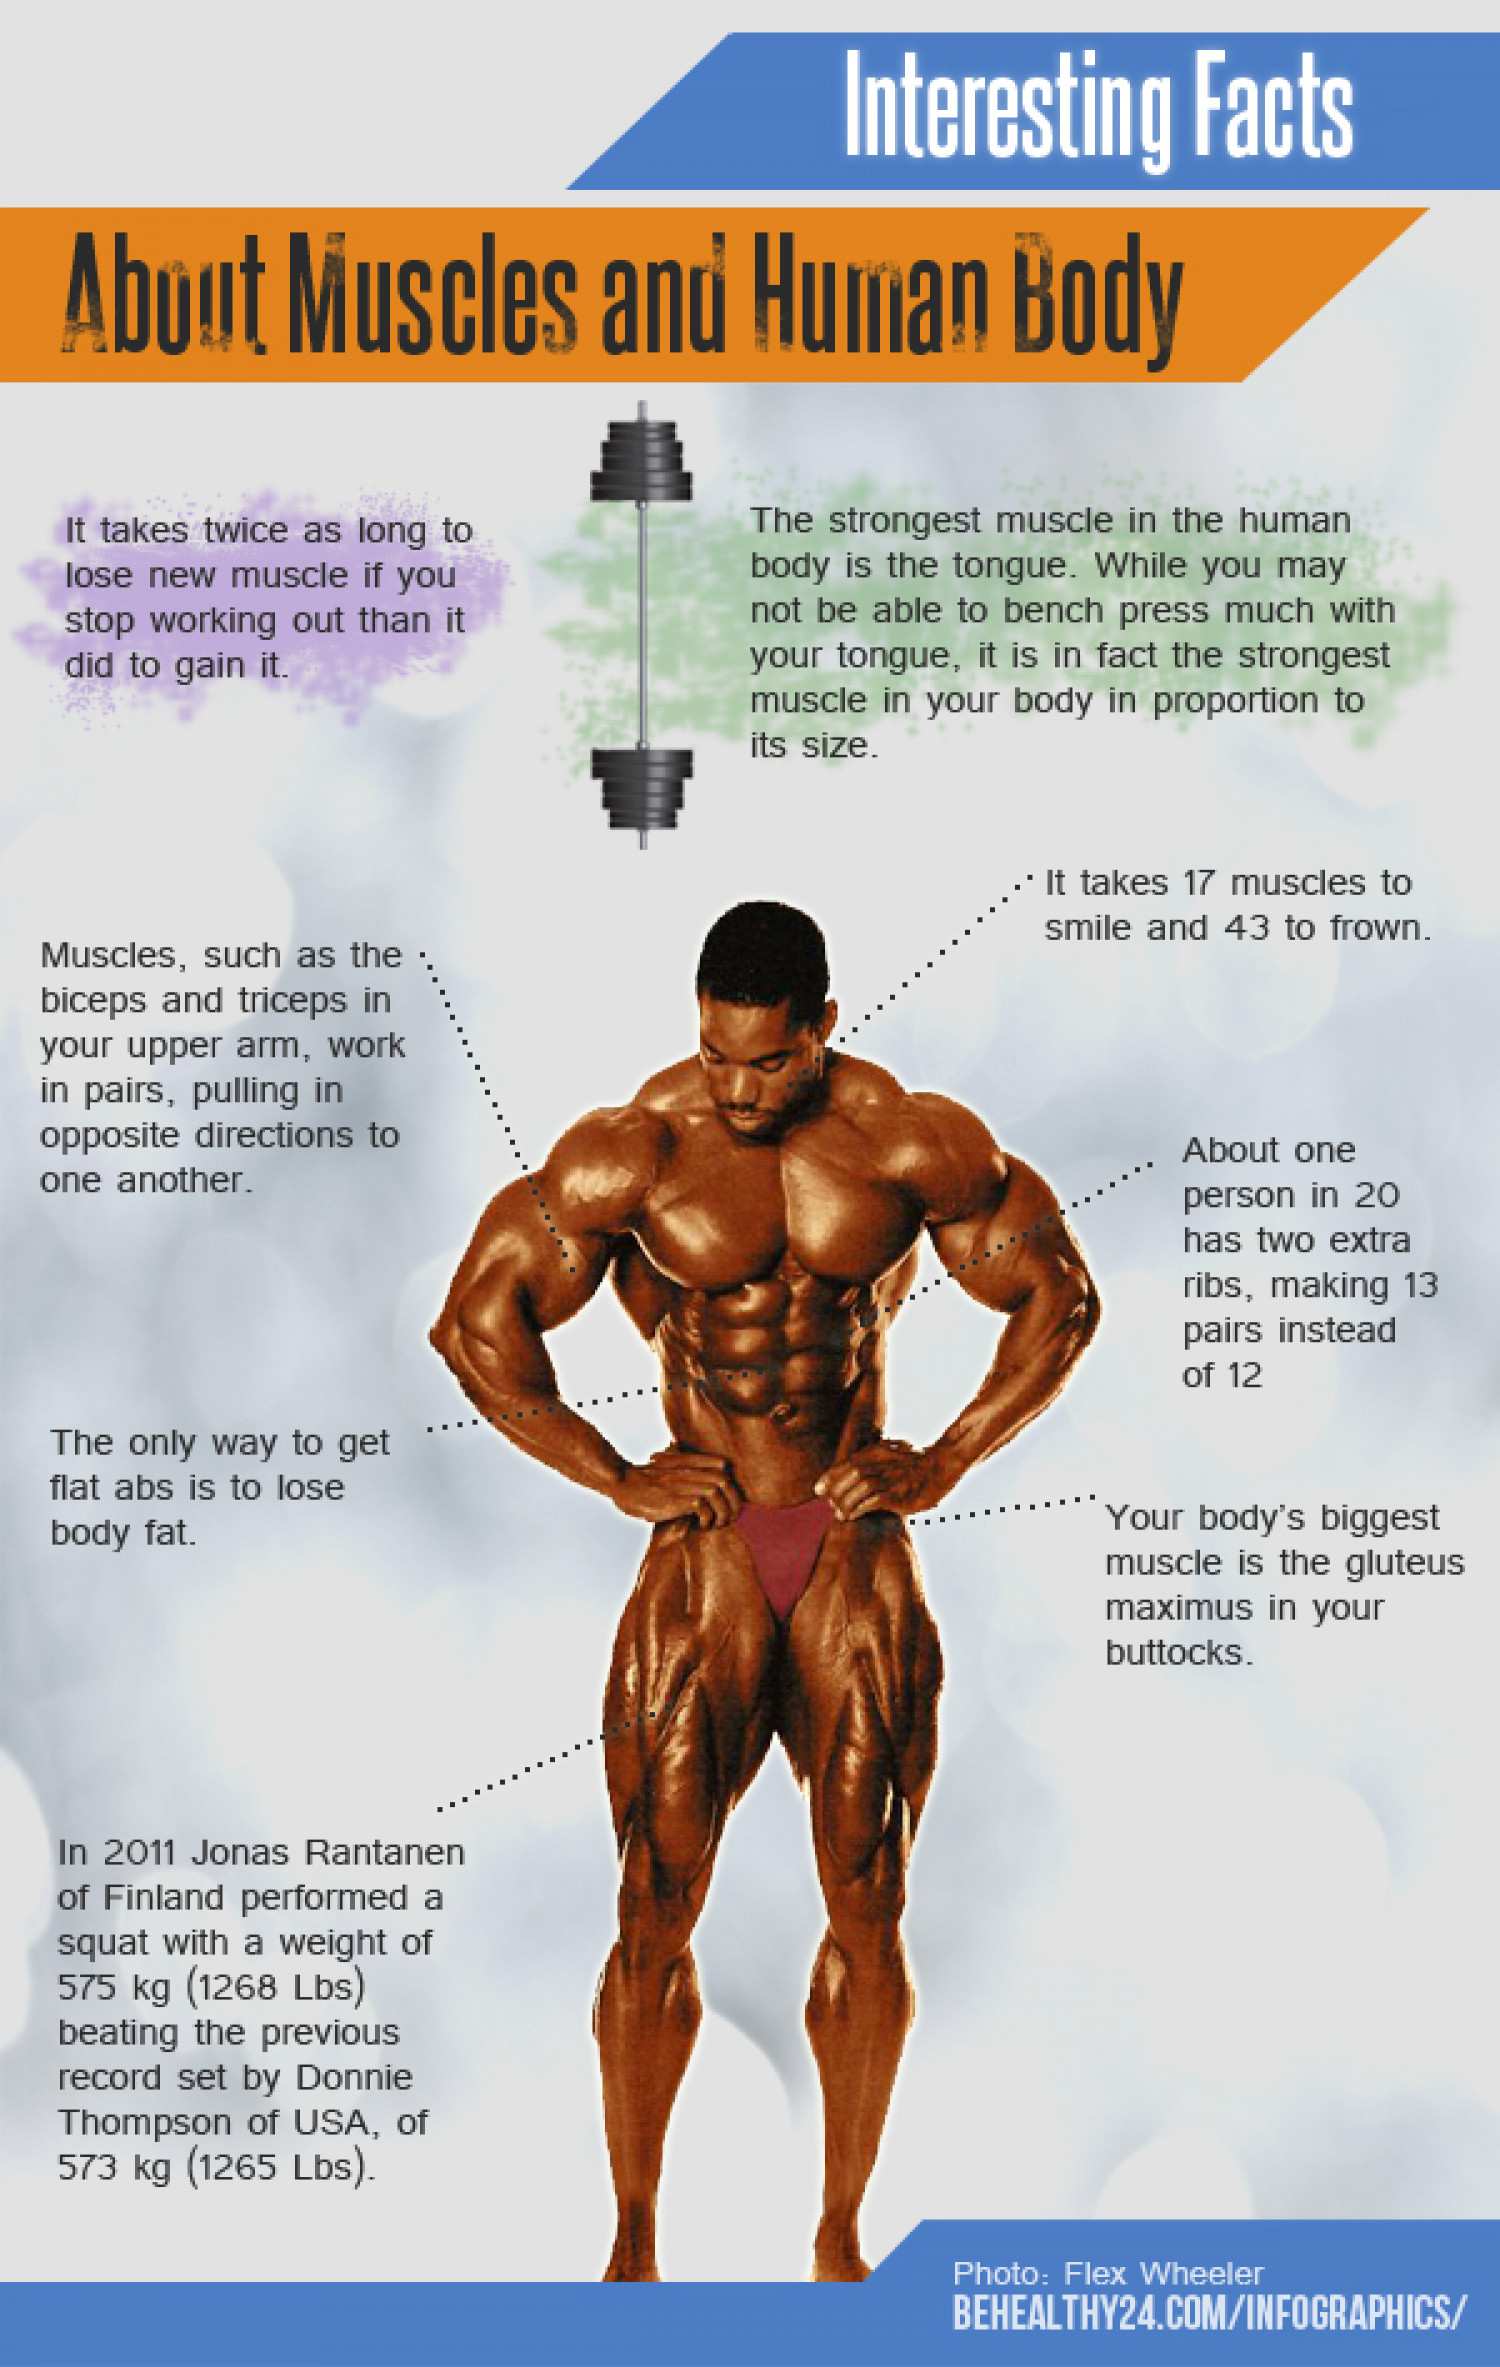 interesting facts about muscle and human body | visual.ly, Muscles